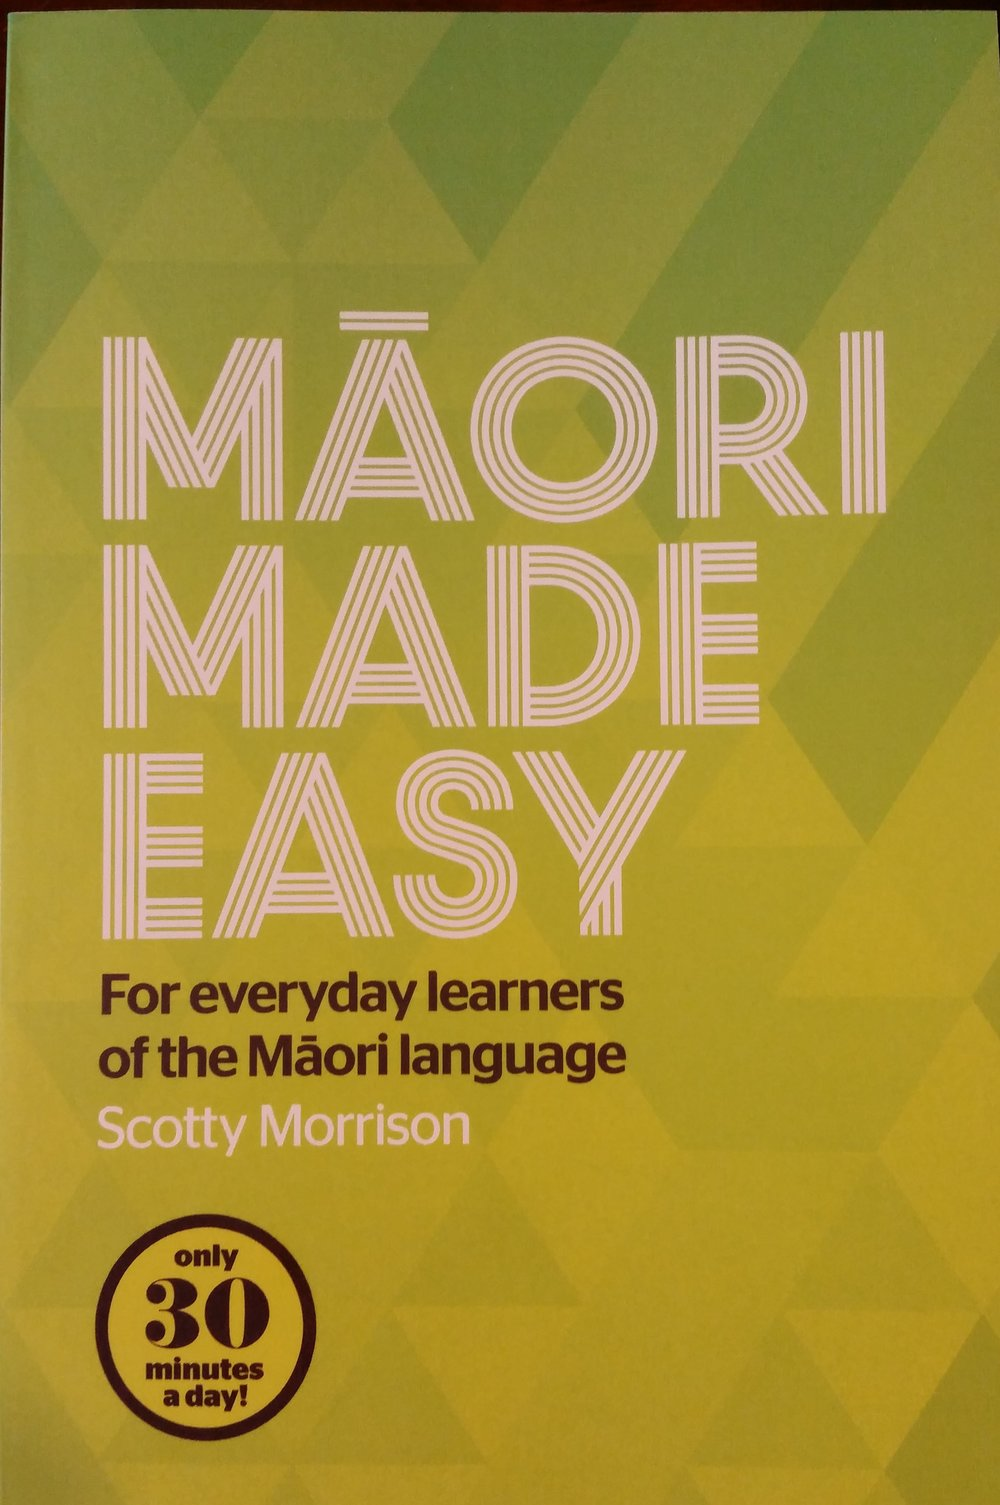 Whakataetae - Be in to win a copy of 'Māori Made Easy - For everyday learners of the Māori language' by Scotty Morrison